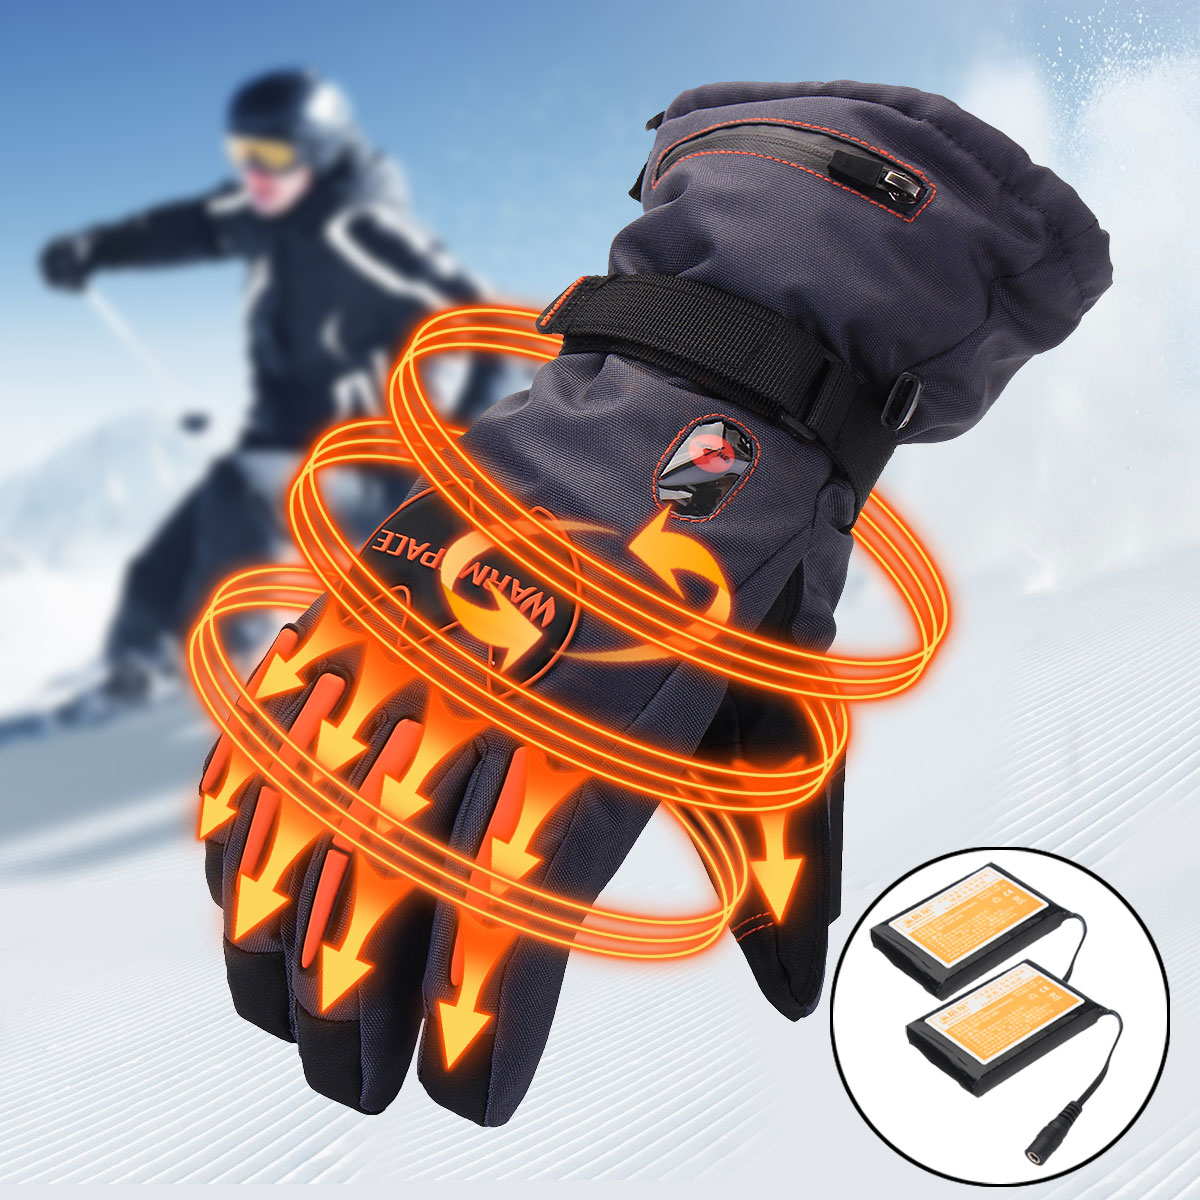 5600mAh Rechargeable Battery Electric Heated Hands Motorcycle Gloves Winter Hands Warmer Outdoor Skiing Protective Gloves